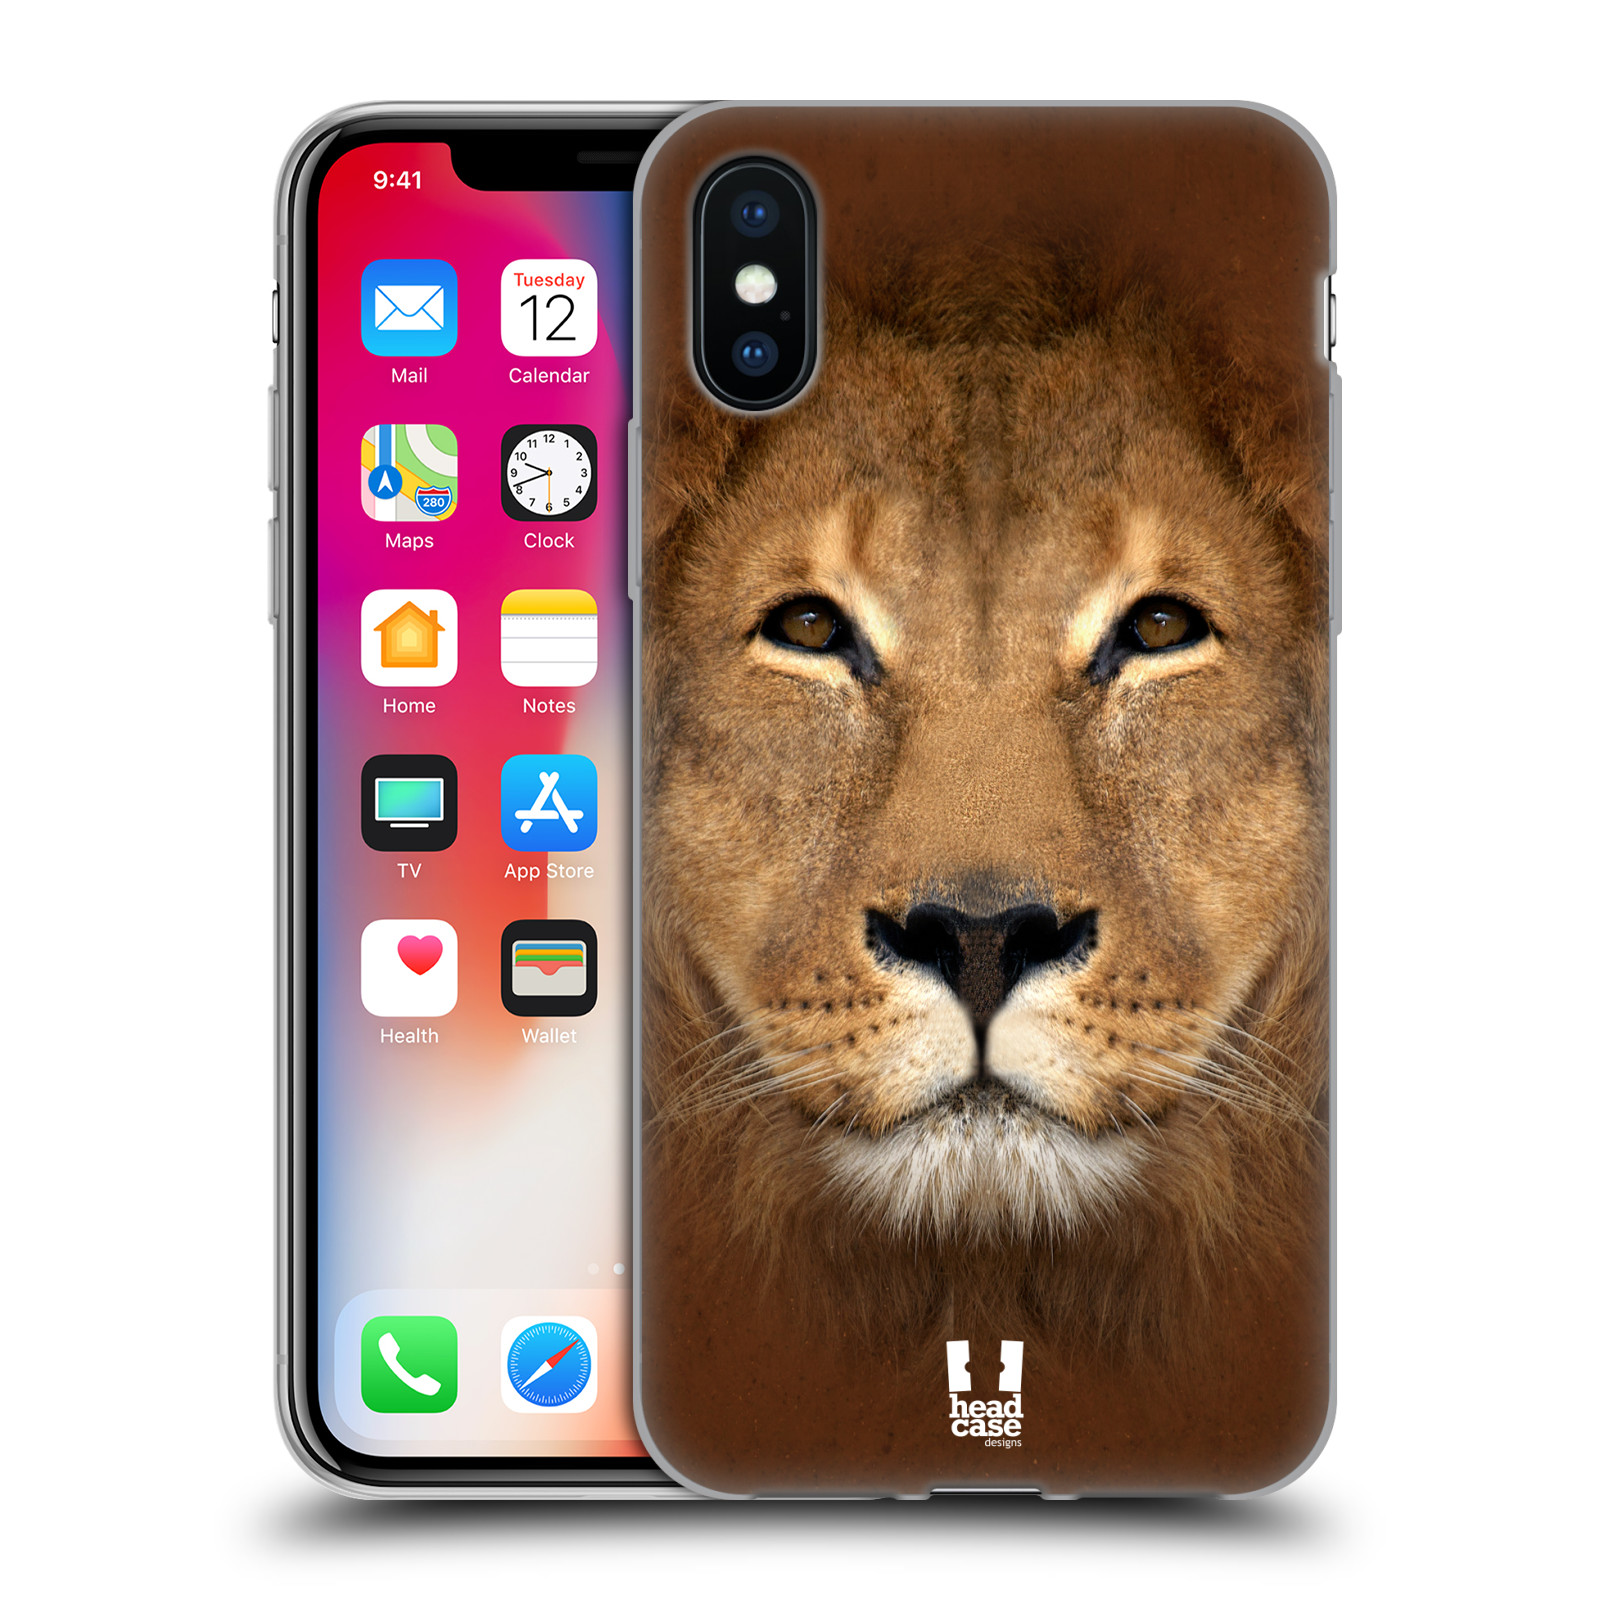 HEAD-CASE-DESIGNS-ANIMAL-FACES-2-SOFT-GEL-CASE-FOR-APPLE-iPHONE-PHONES